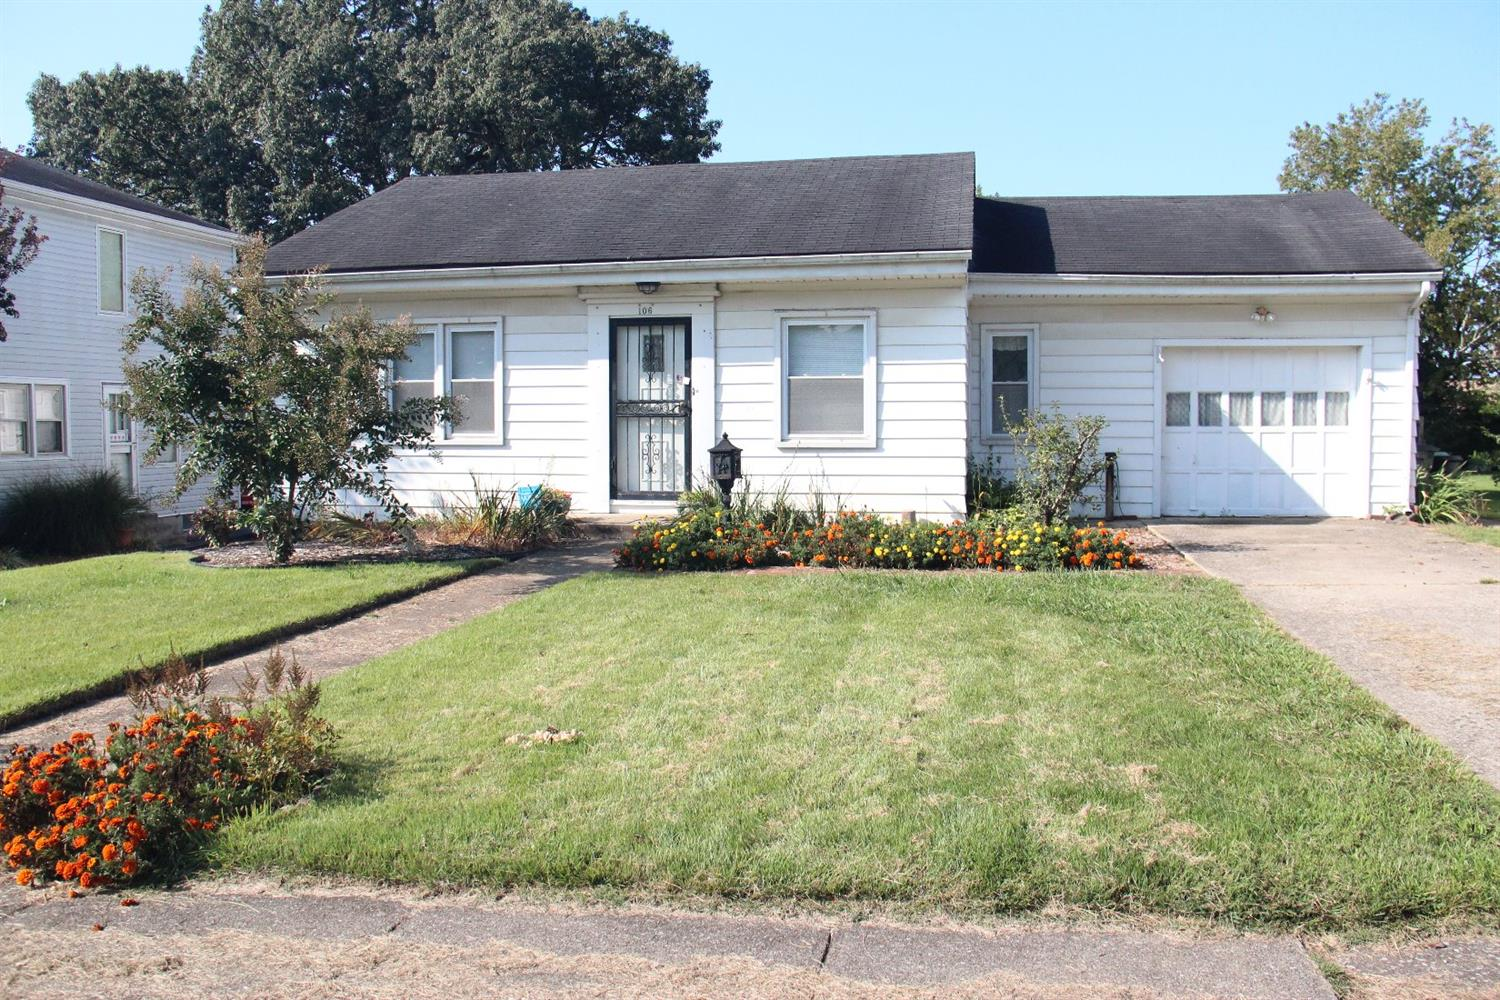 Price%20Reduced%20%20$10,000!!%20OPEN%20HOUSE%202-4%20Sun.%2010/1/17%20Charming%20RANCH%20home%20located%20in%20very%20quiet%20well%20established%20neighborhood.%20%20One%20floor%20living%20at%20its%20best.%20%203%20ample%20sized%20bedrooms,%202%20FULL%20updated%20Baths,%20one%20in%20Master%20Suite.%20Large%20spacious%20Den%20provides%20extra%20living%20area,%20Huge%20kitchen%20designed%20for%20the%20cook%20with%20much%20storage,%20prep%20and%20serving%20space.%20Fresh%20paint,%20newly%20refinished%20Hardwood%20floors%20and%20new%20laminate%20flooring%20makes%20this%20home%20move%20in%20ready!%20%20Other%20features%20are%20a%20%20Separate%20laundry%20room,%20one%20car%20attached%20garage%20%20massive%20deck%20spans%20the%20width%20of%20the%20home%20and%20overlooking%20a%20private%20fully%20fenced%20back%20yard%20with%20many%20low%20maintenance%20flowering%20trees%20and%20perennials.%20Large%20storage%20shed%20wired%20with%20electricity%20is%20perfect%20for%20the%20Do-it-Yourself%20kinda%20person!%20Don't%20miss%20this%20jewel%20of%20a%20home,%20Schedule%20your%20tour%20today!